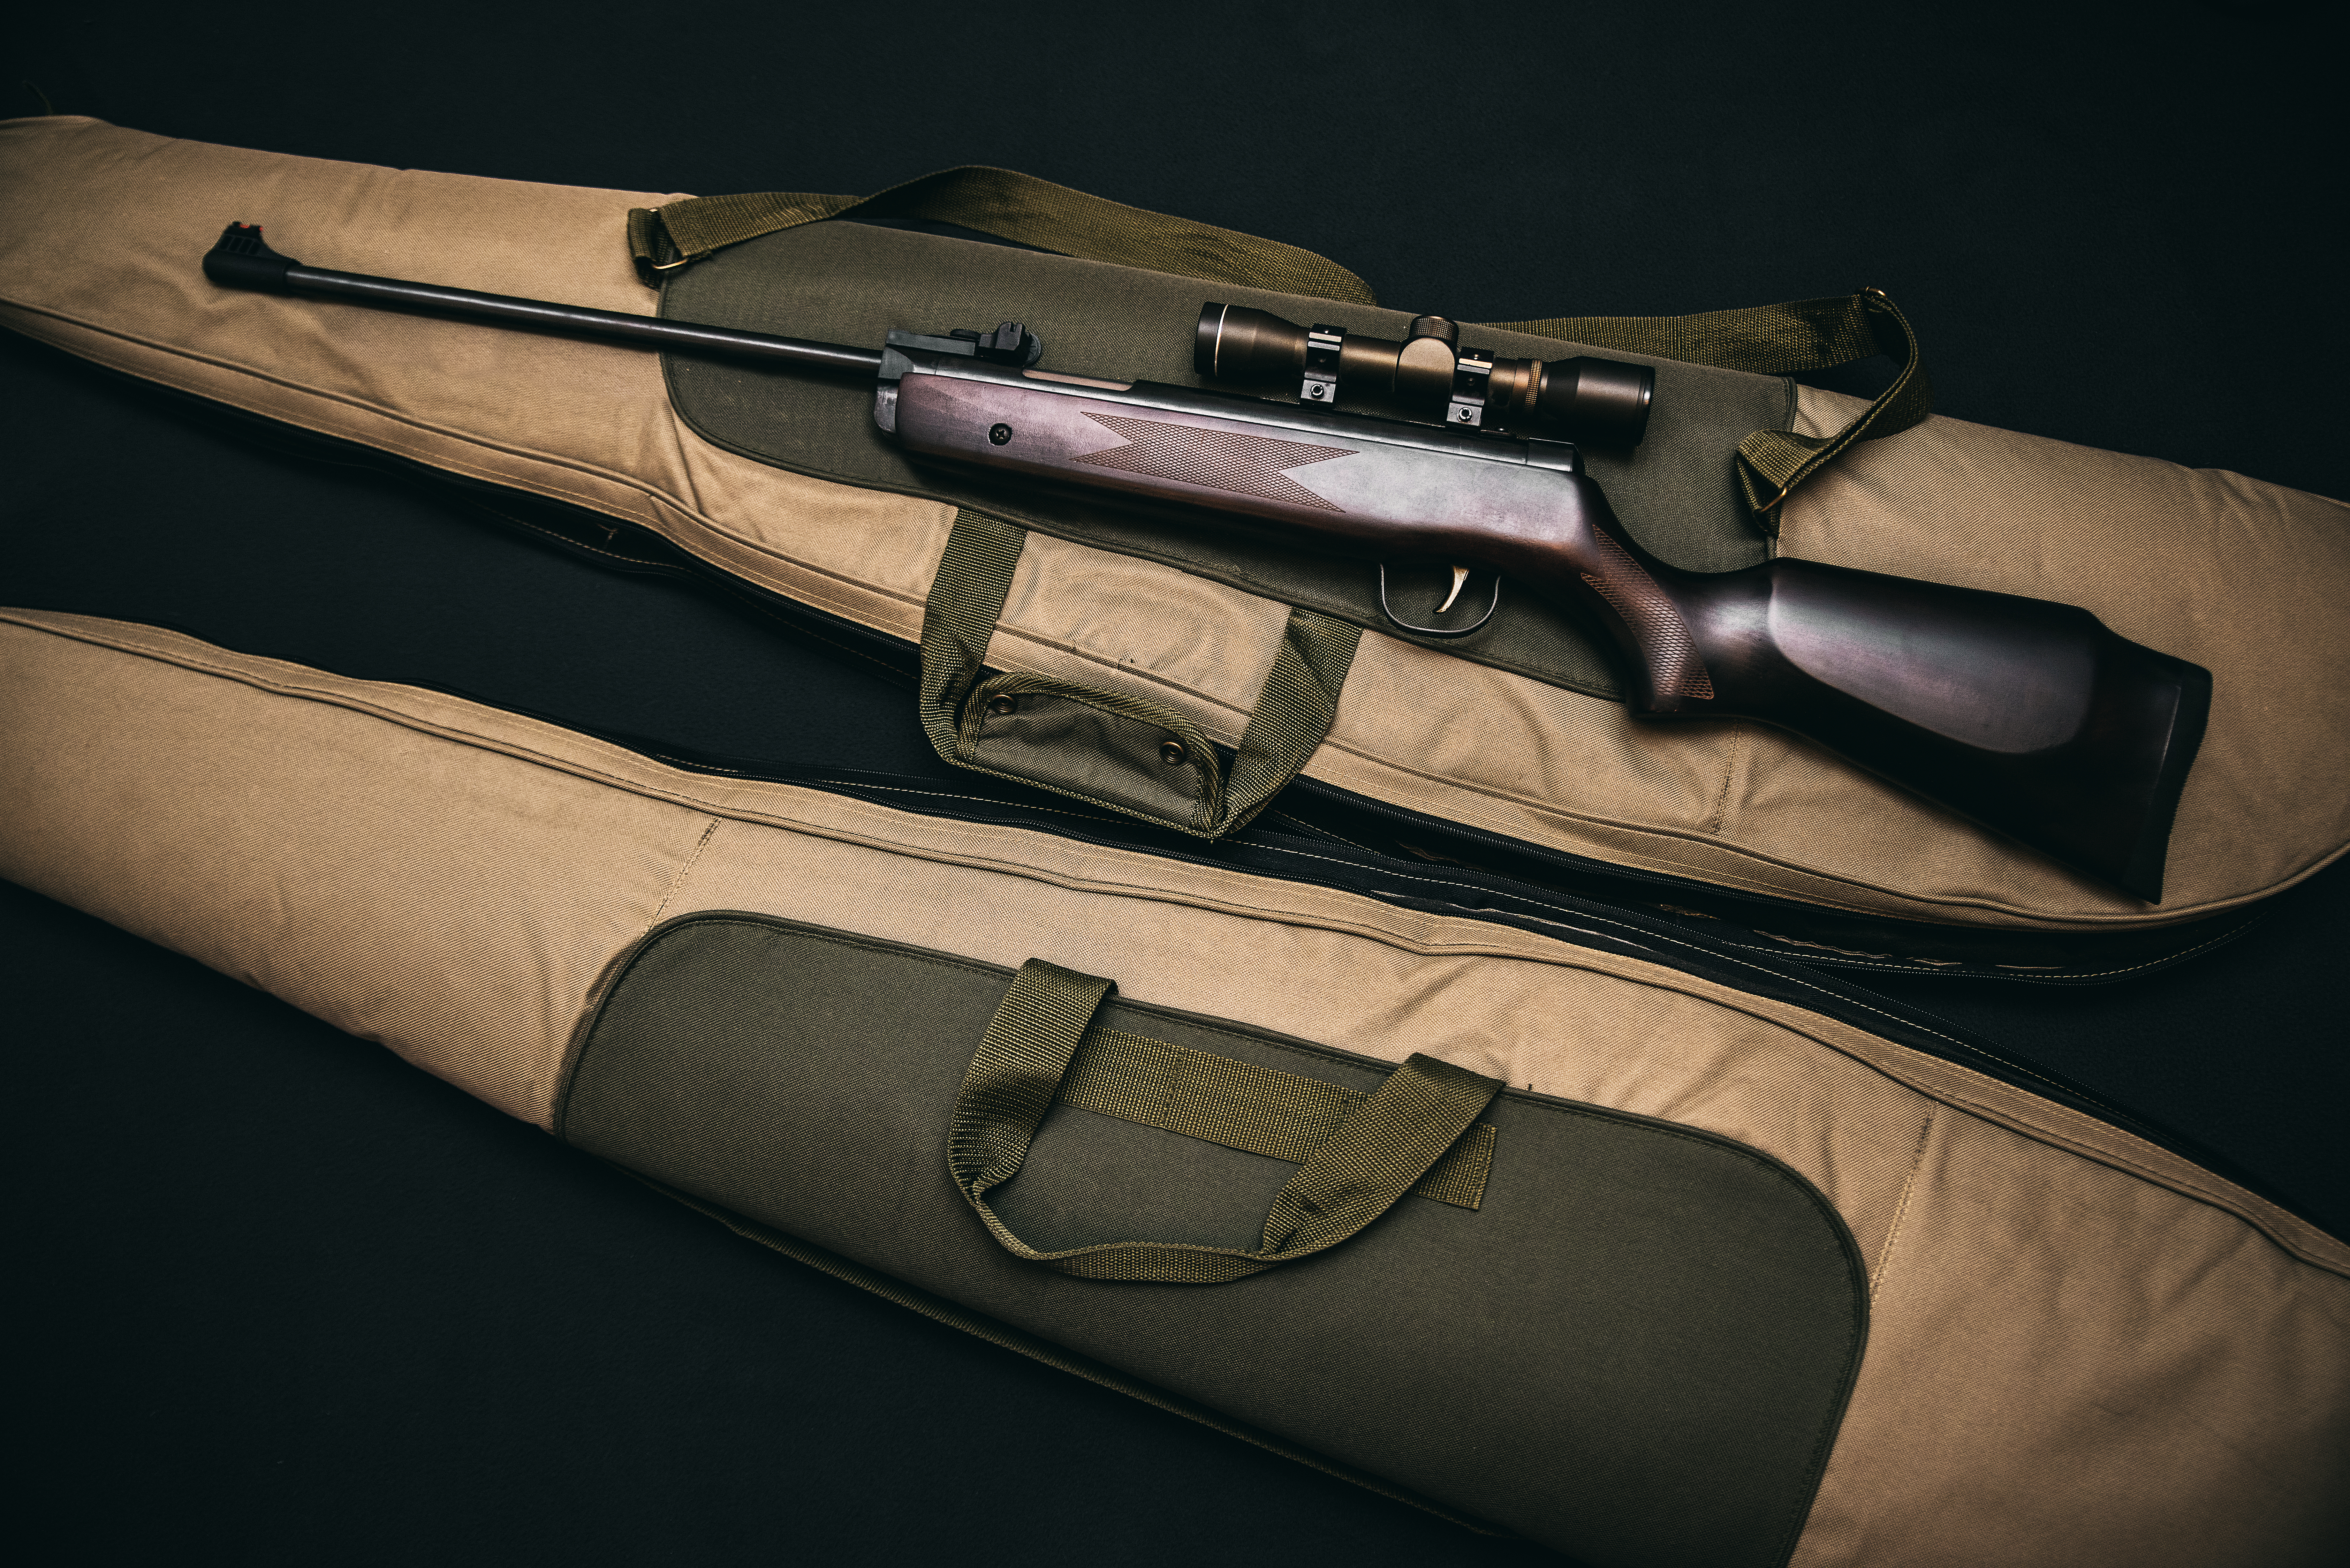 Image Result For Brown And Black Sniper Rifle With Beige Bag